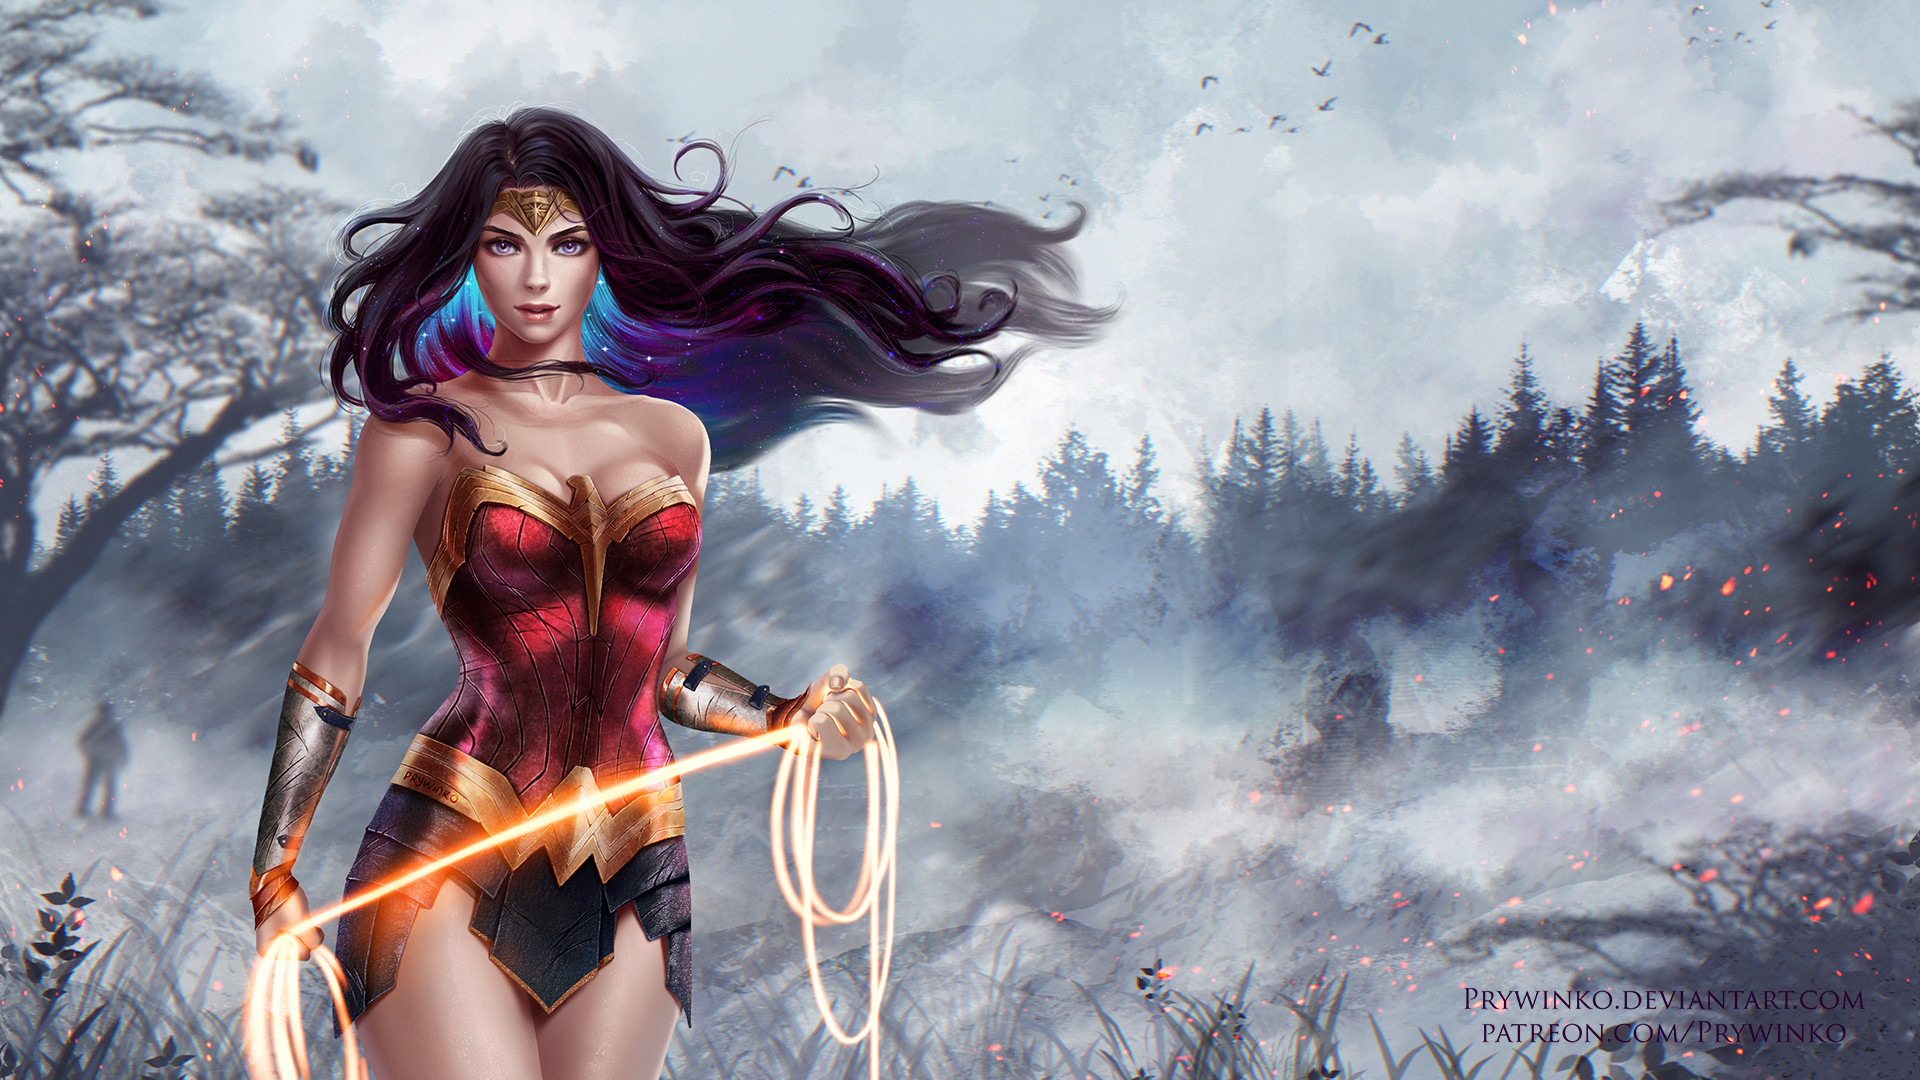 2017 Wonder Woman 4k Hd Movies 4k Wallpapers Images: 3840x2400 Wonder Woman Superhero Artwork 4k HD 4k